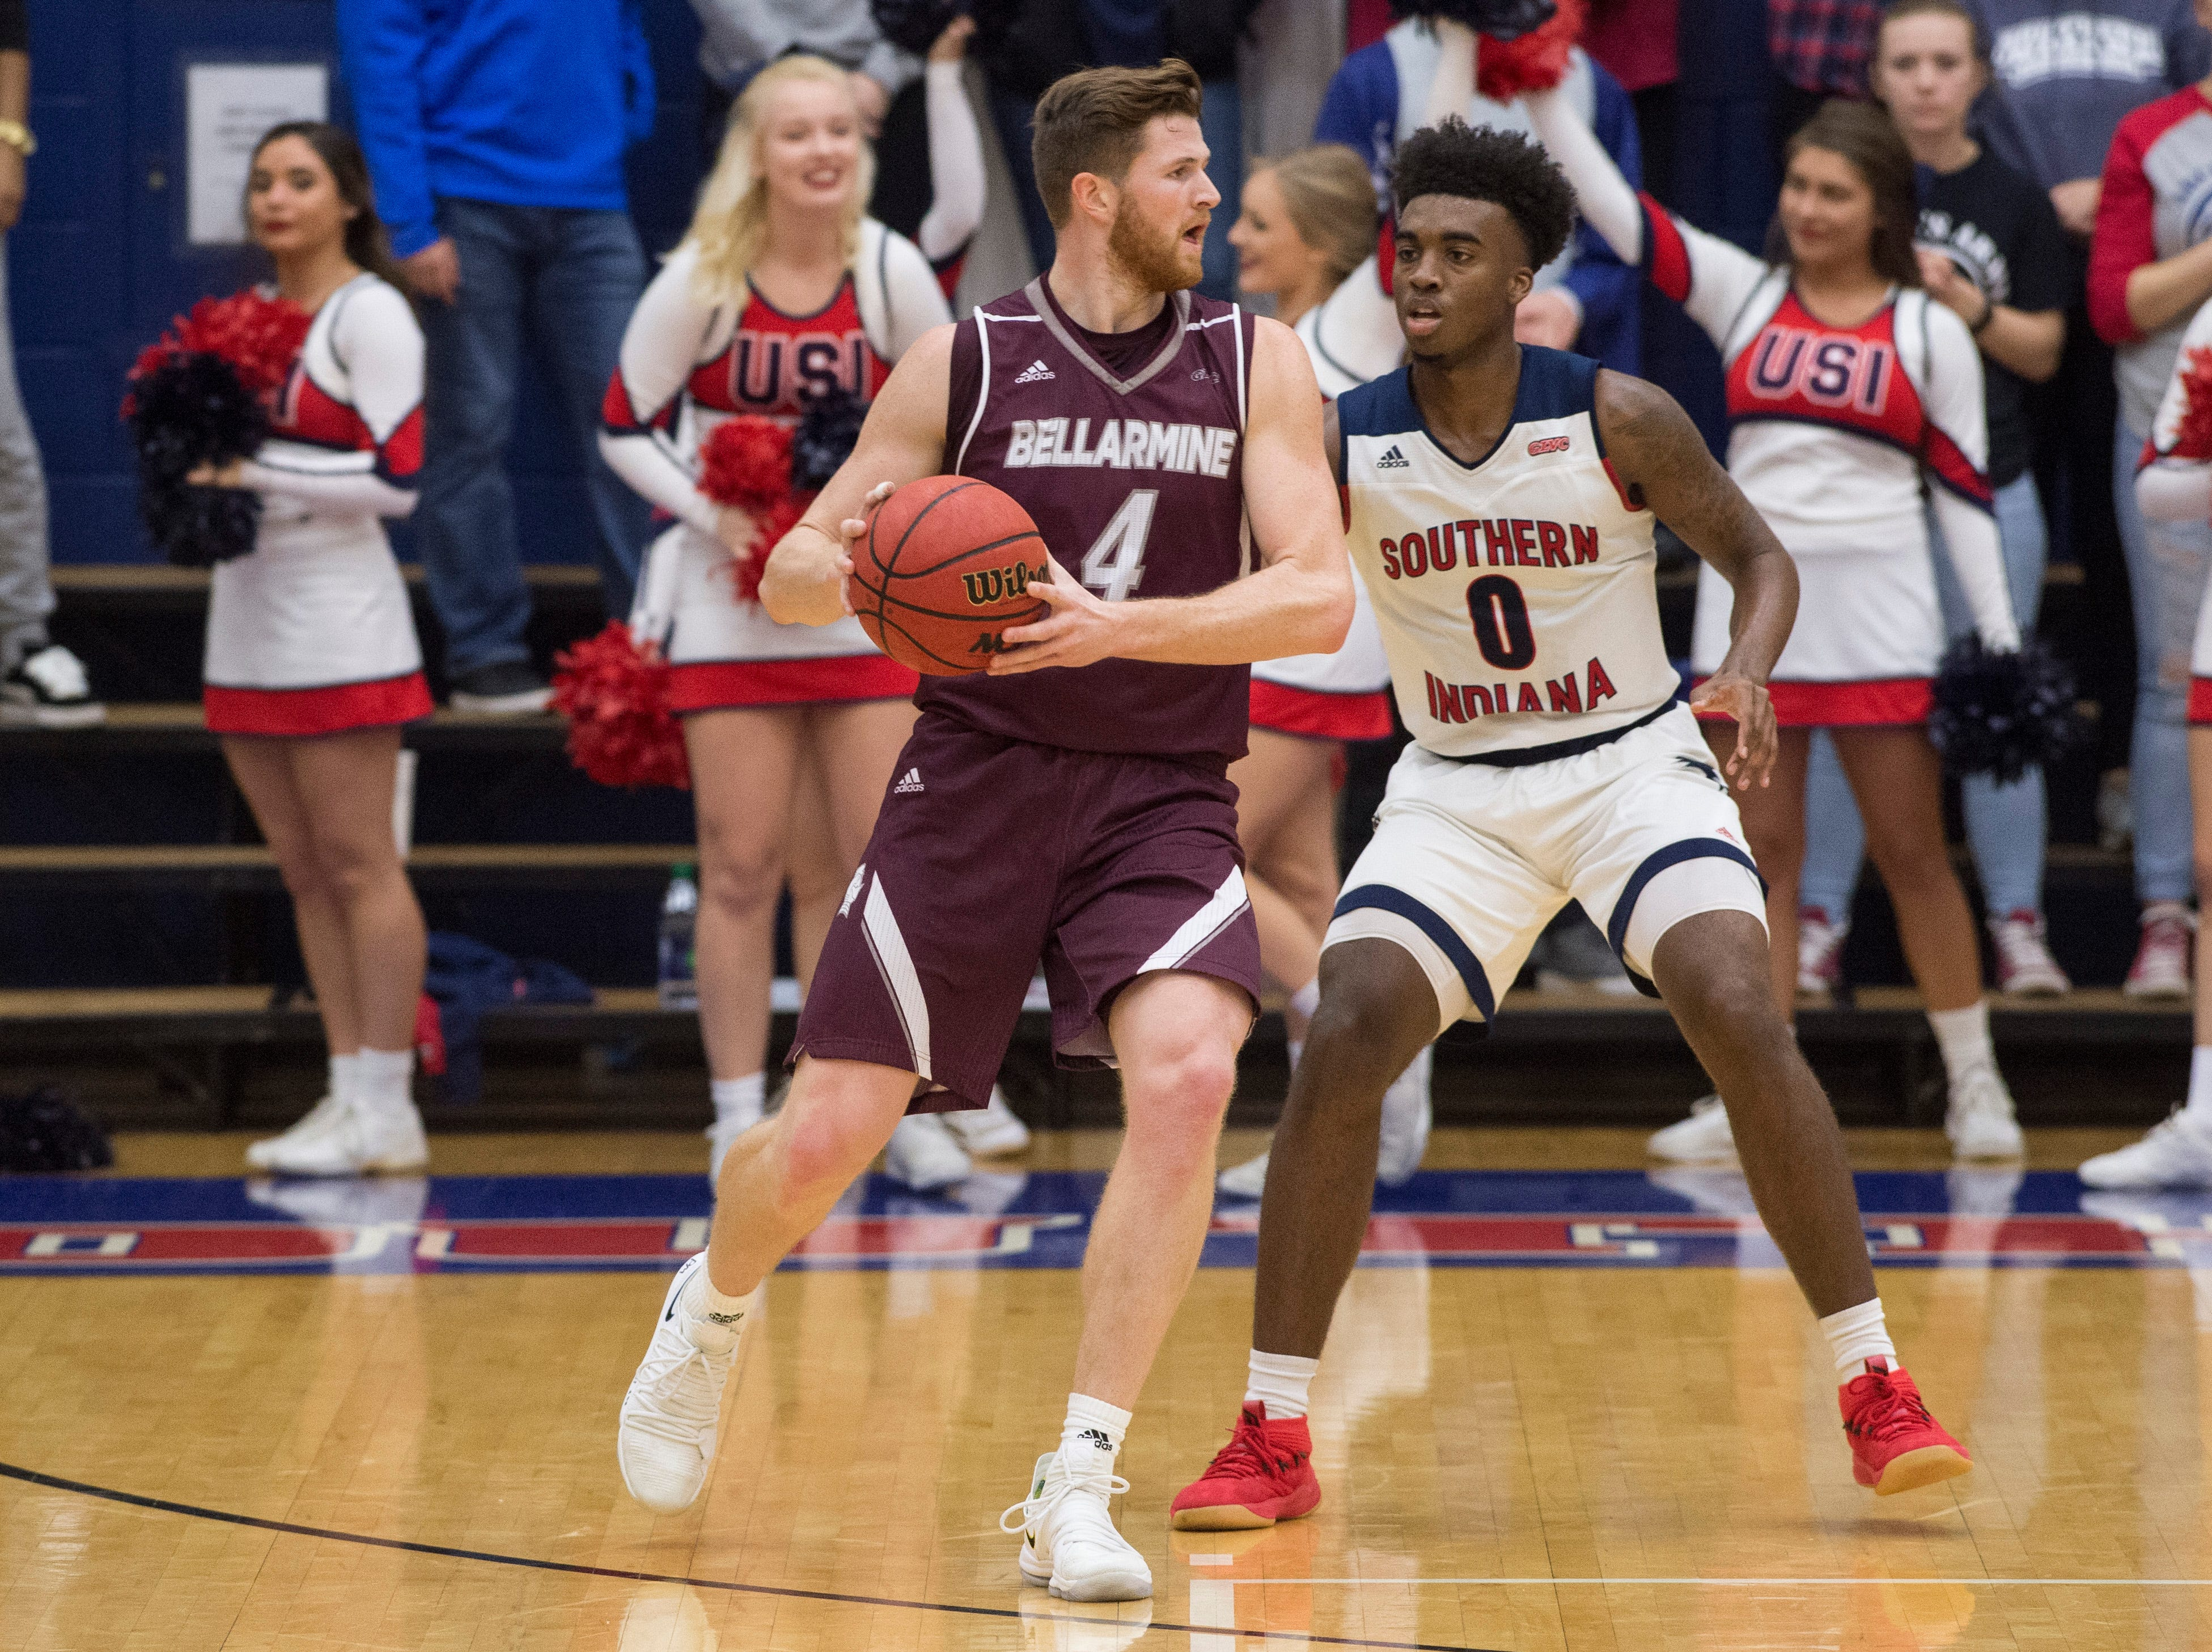 Bellarmine's Ben Weyer (4) looks for an open man during the USI vs Bellarmine game at the PAC Saturday, Dec. 1, 2018.